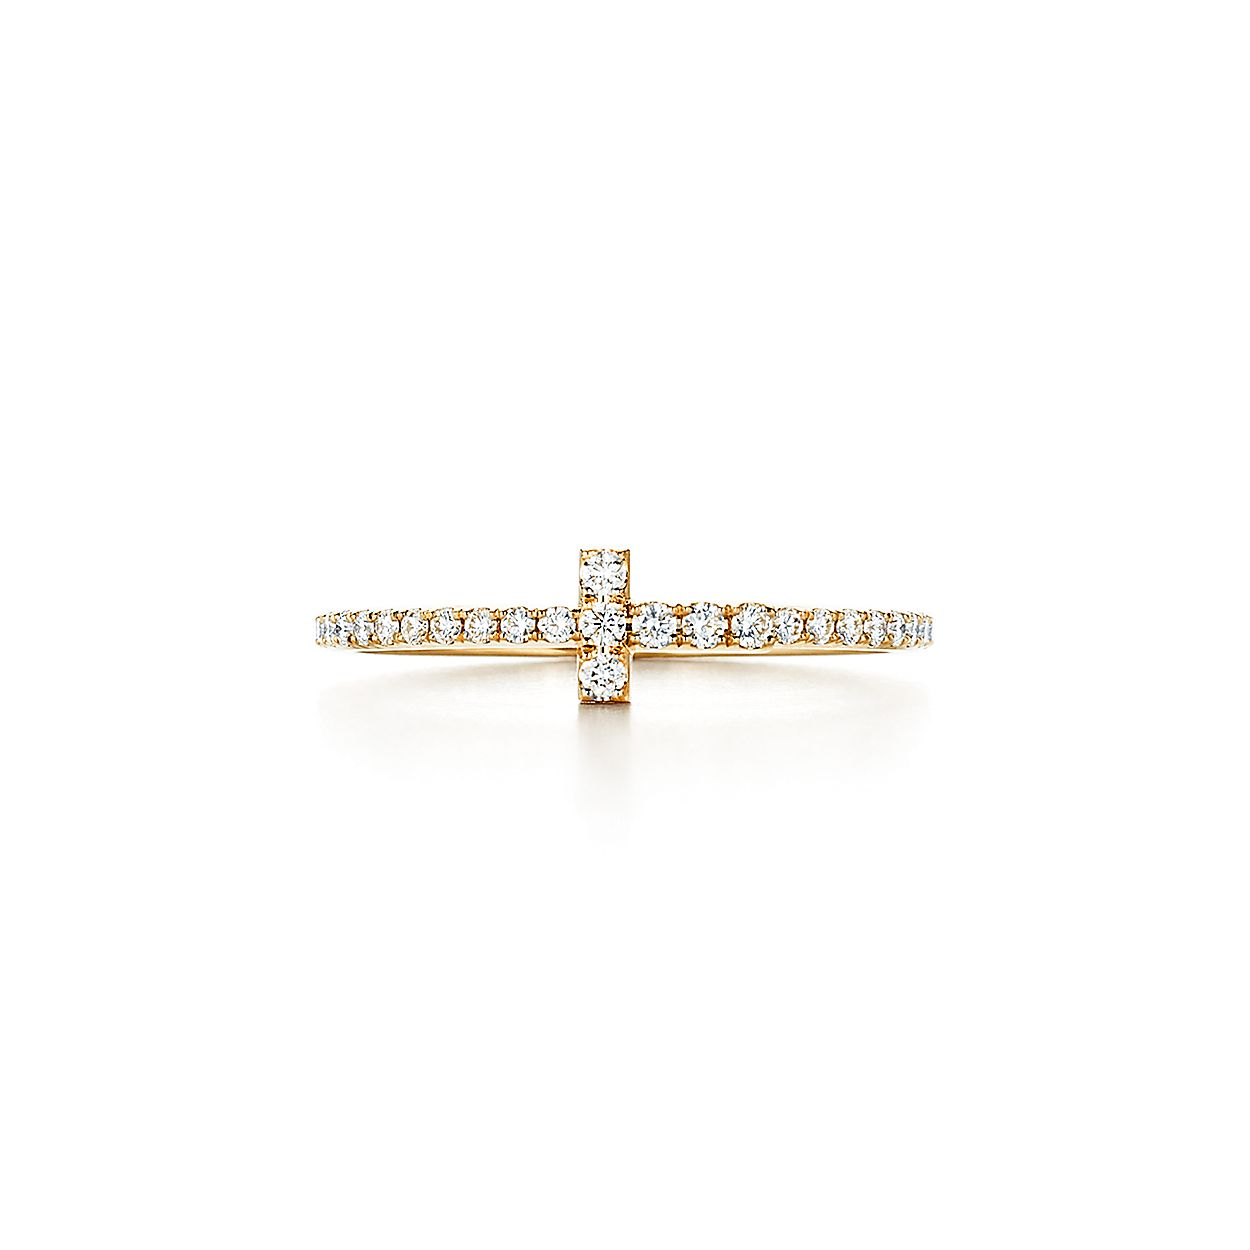 59686fe04 Tiffany T wire ring in 18k gold with diamonds. | Tiffany & Co.